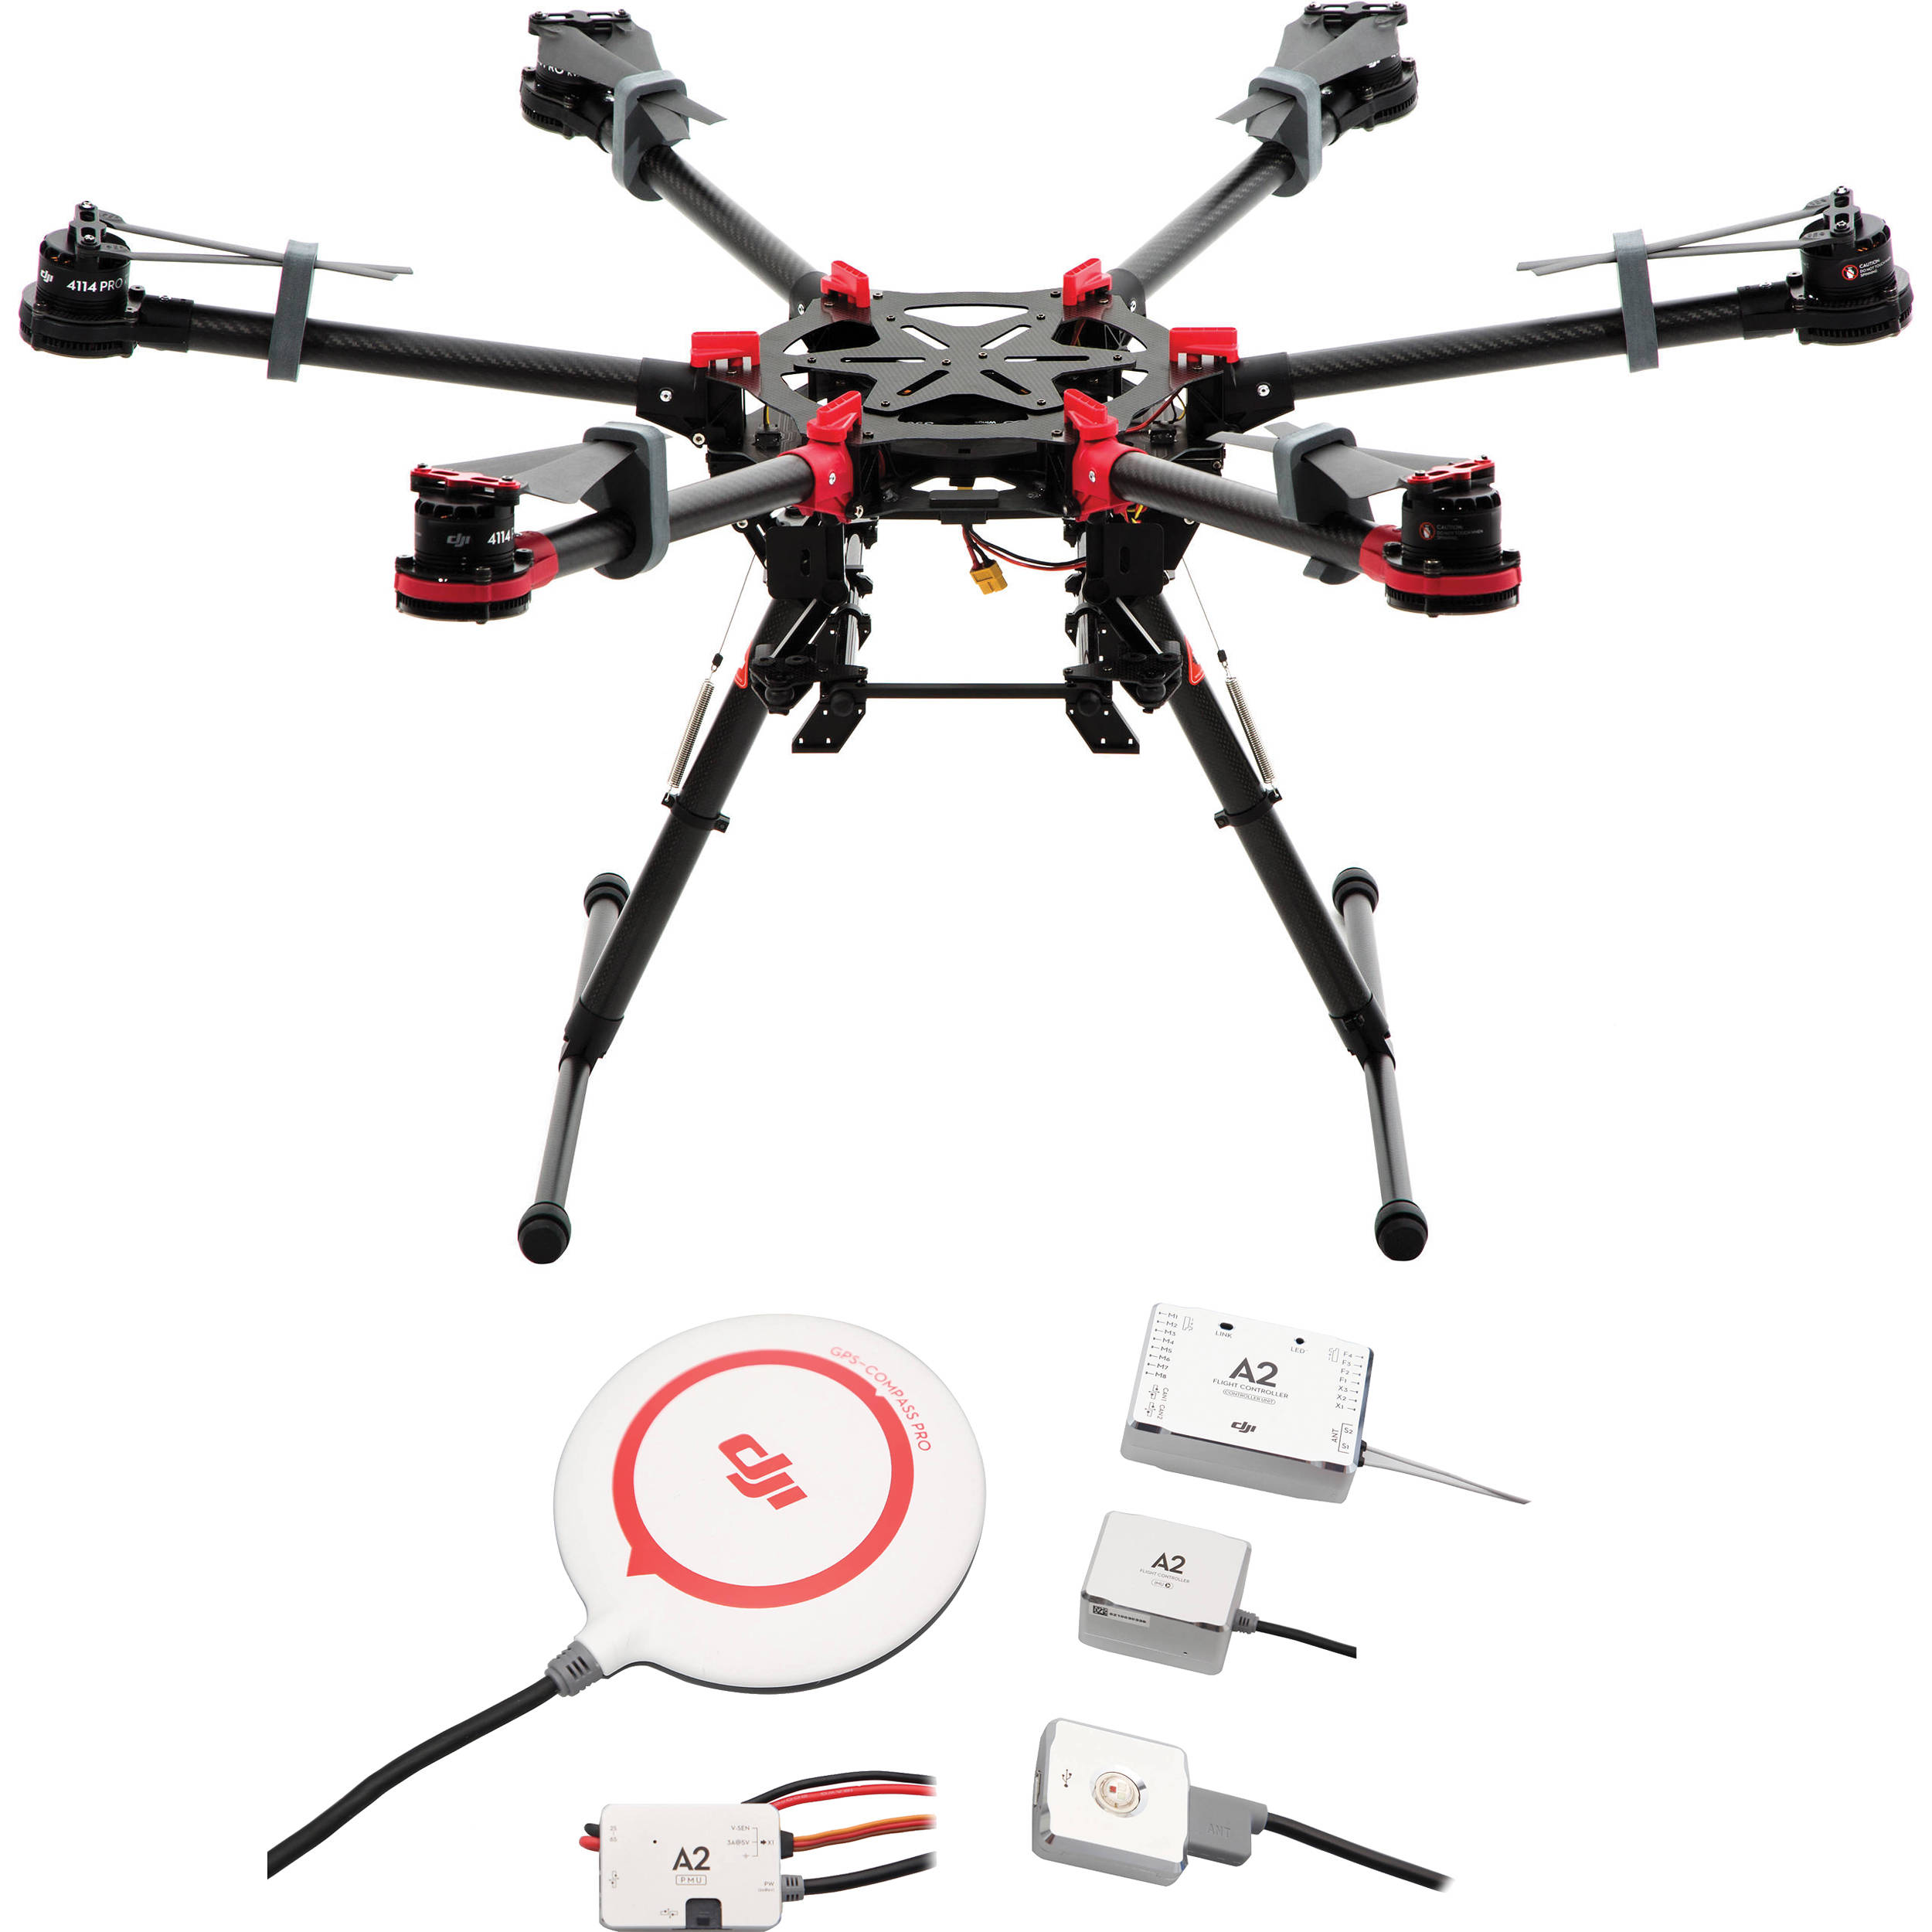 DJI Spreading Wings S900 Hexacopter with A2 Flight CB.SB